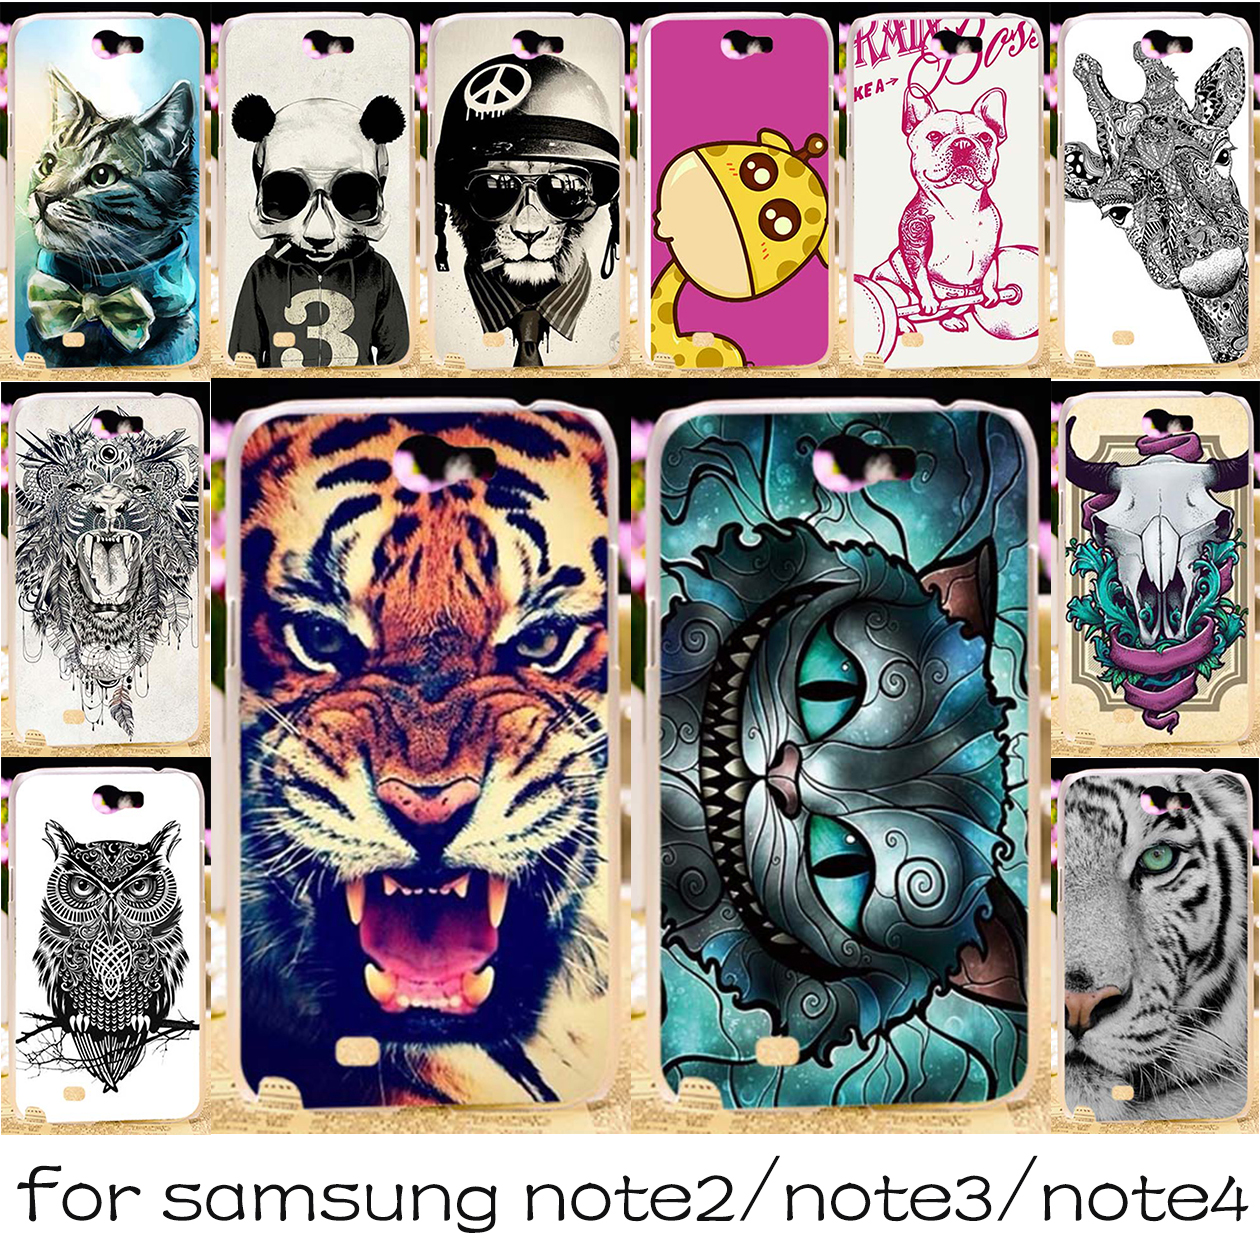 Silicone Or Plastic Mobile Phone Case For Samsung Galaxy Note 2 3 4 Ipaky Bumper Soft Original N9000 N9005 N7100 N9100